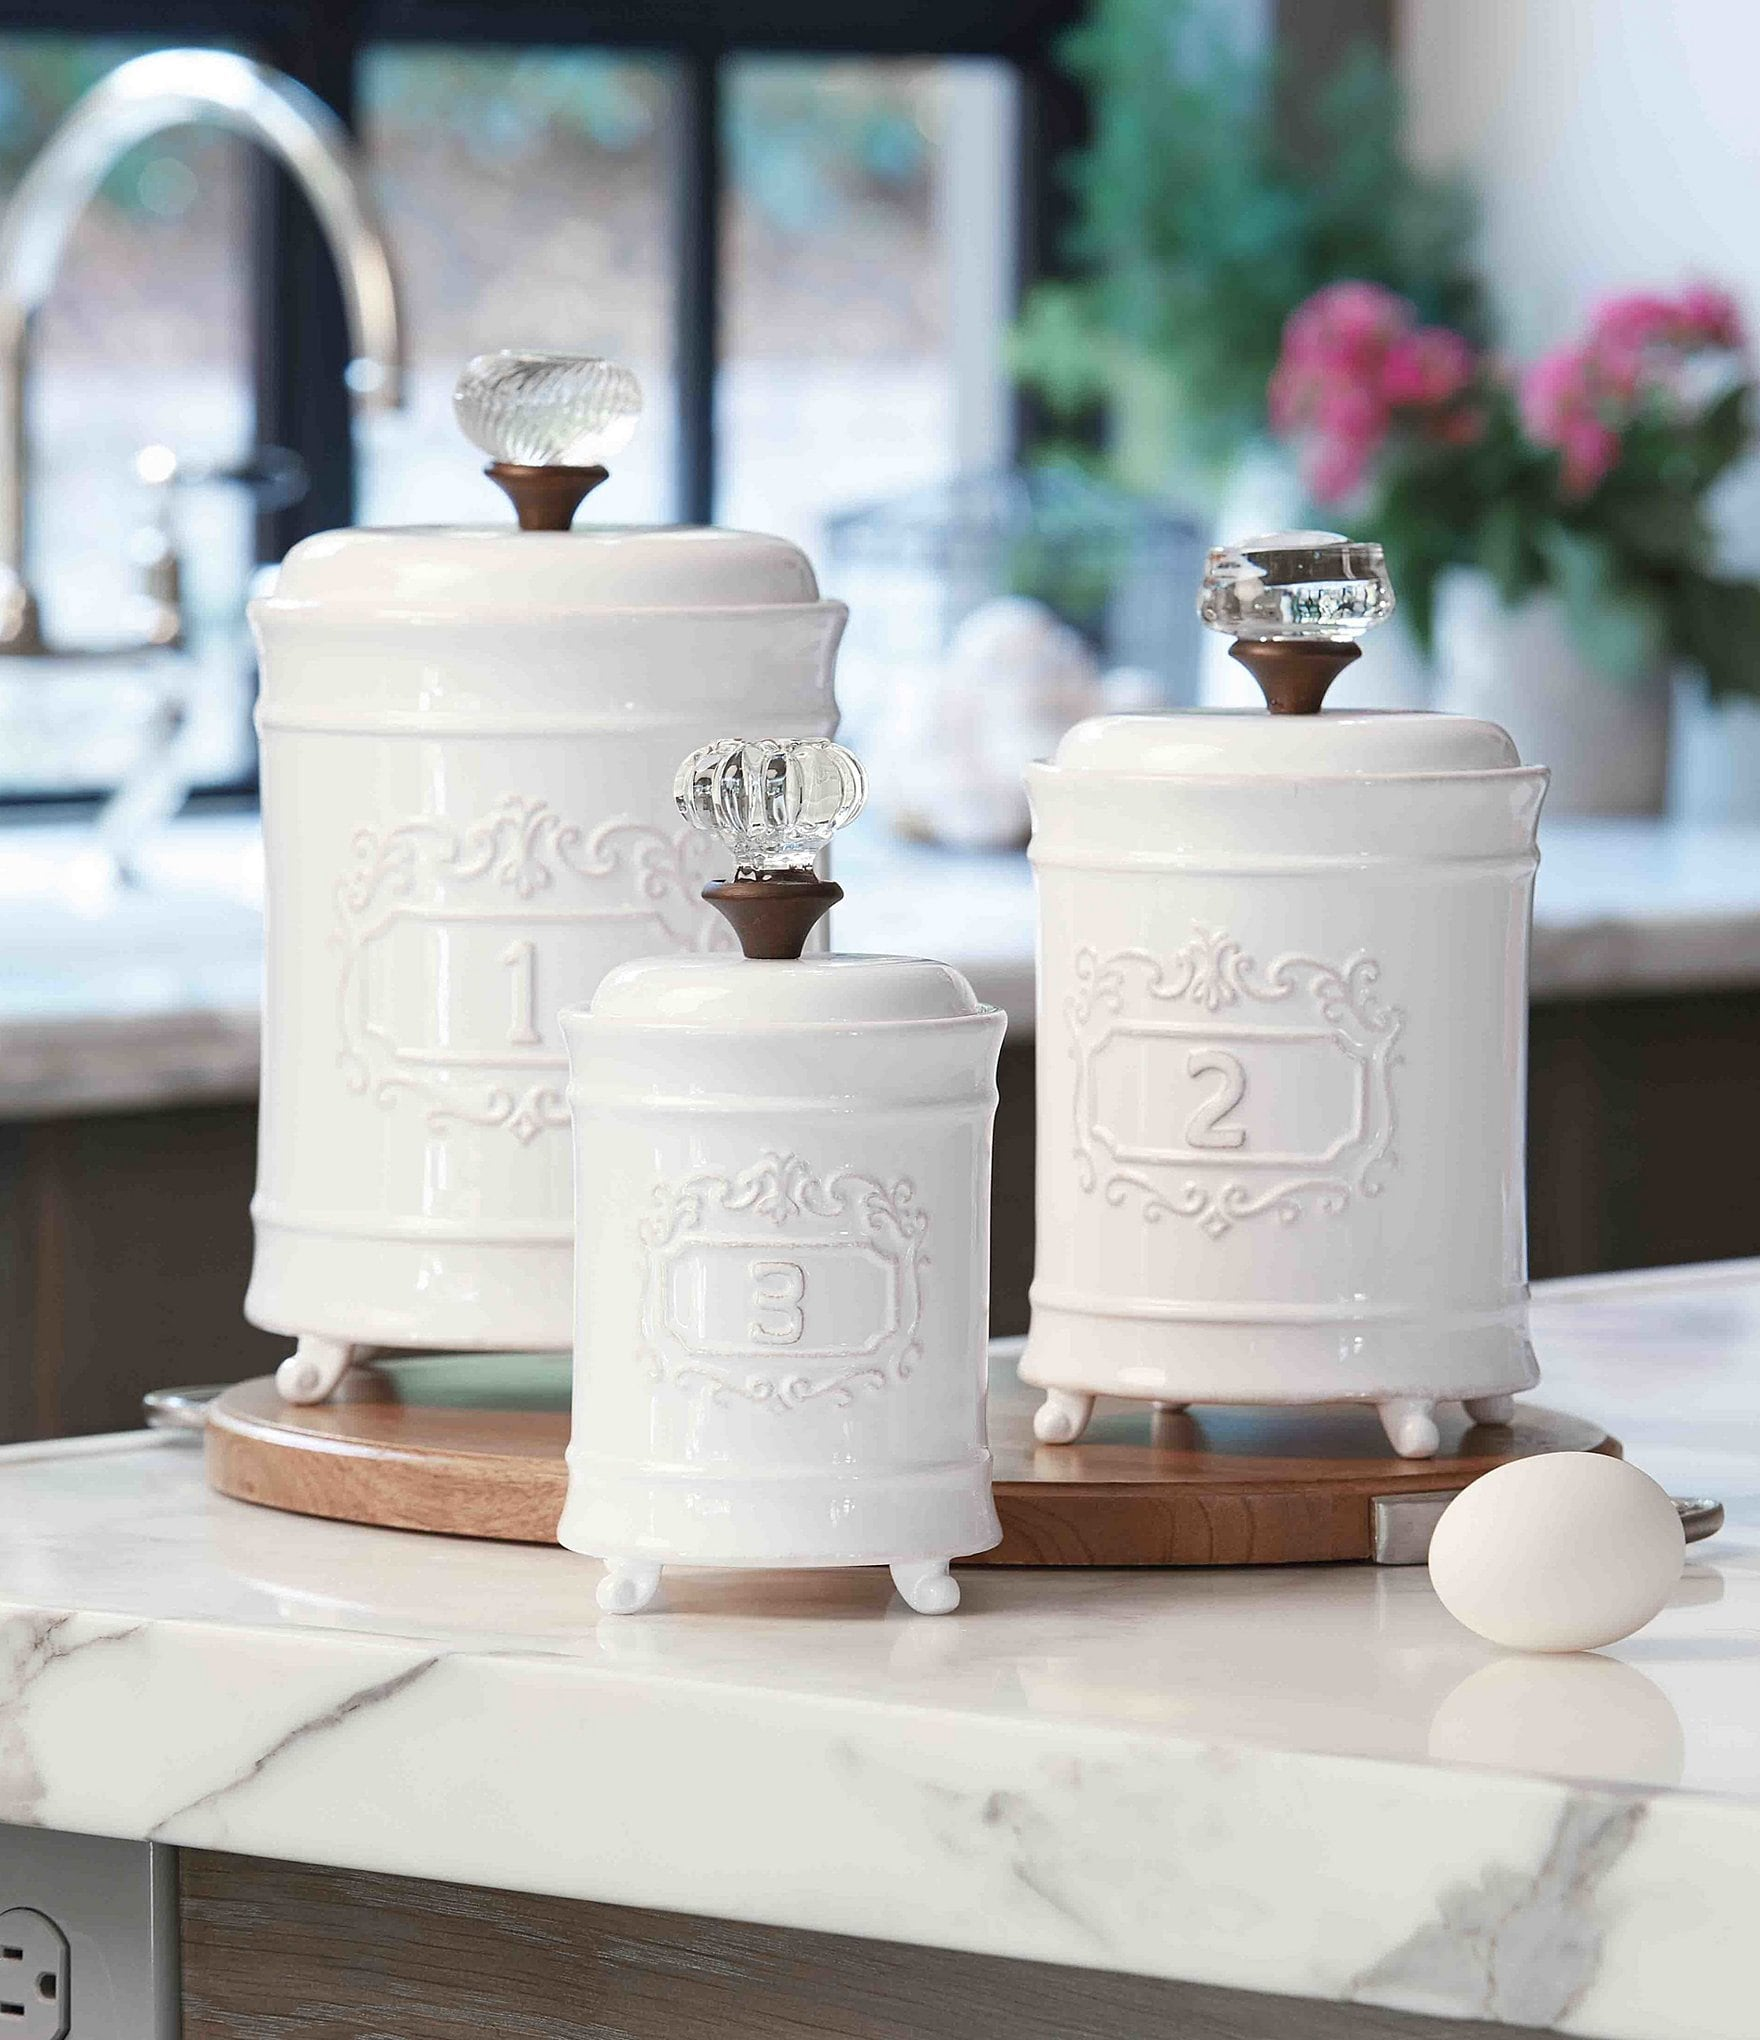 Mud Pie 3 Piece Farmhouse Circa Vintage Doorknob Canister